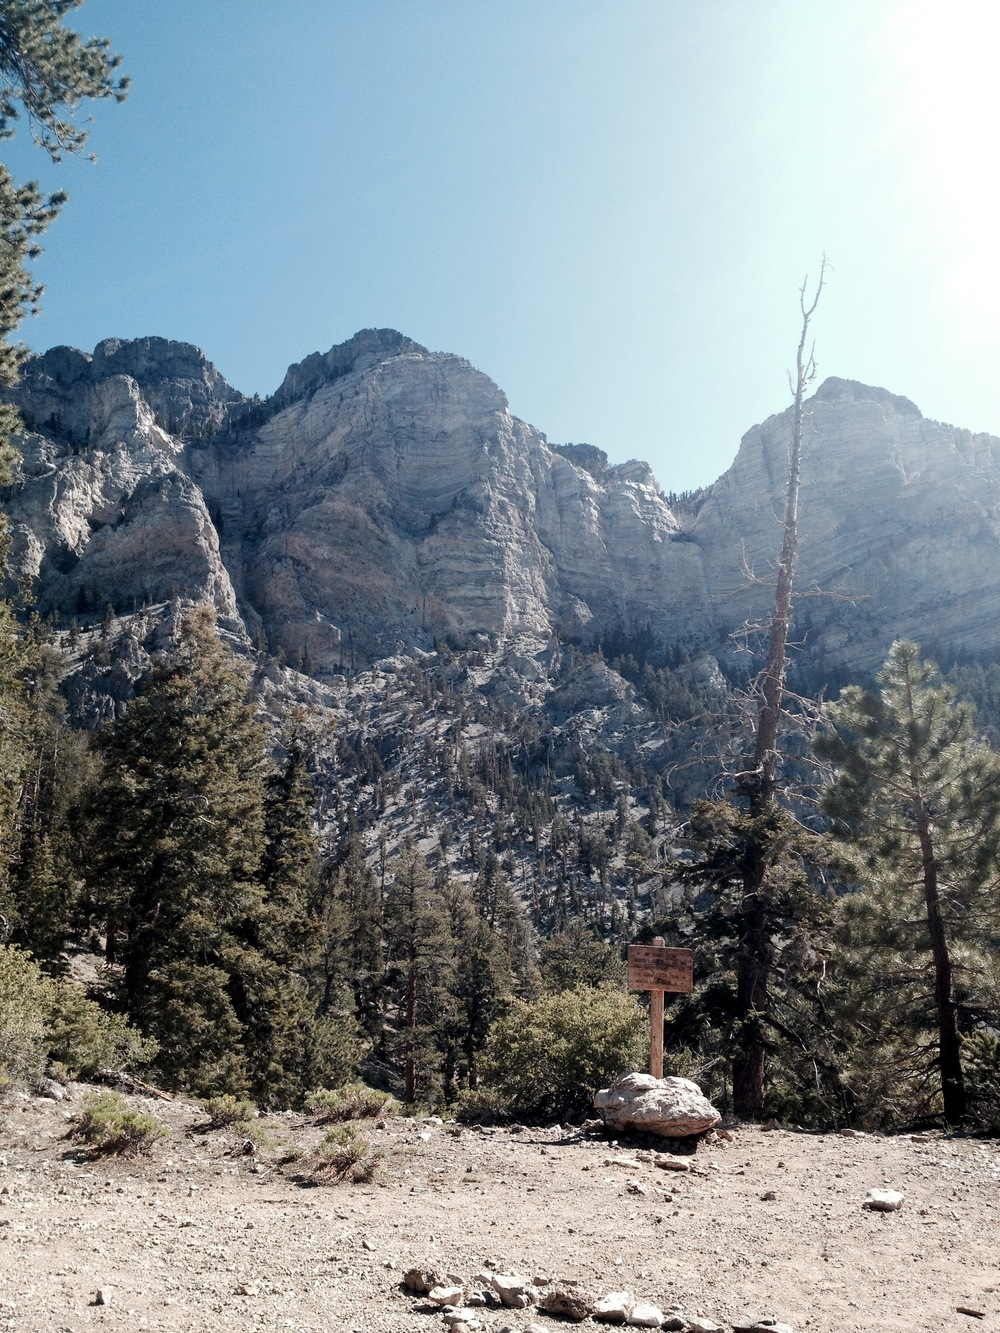 Halfway up our trail at Mt. Charleston and enjoying the view!